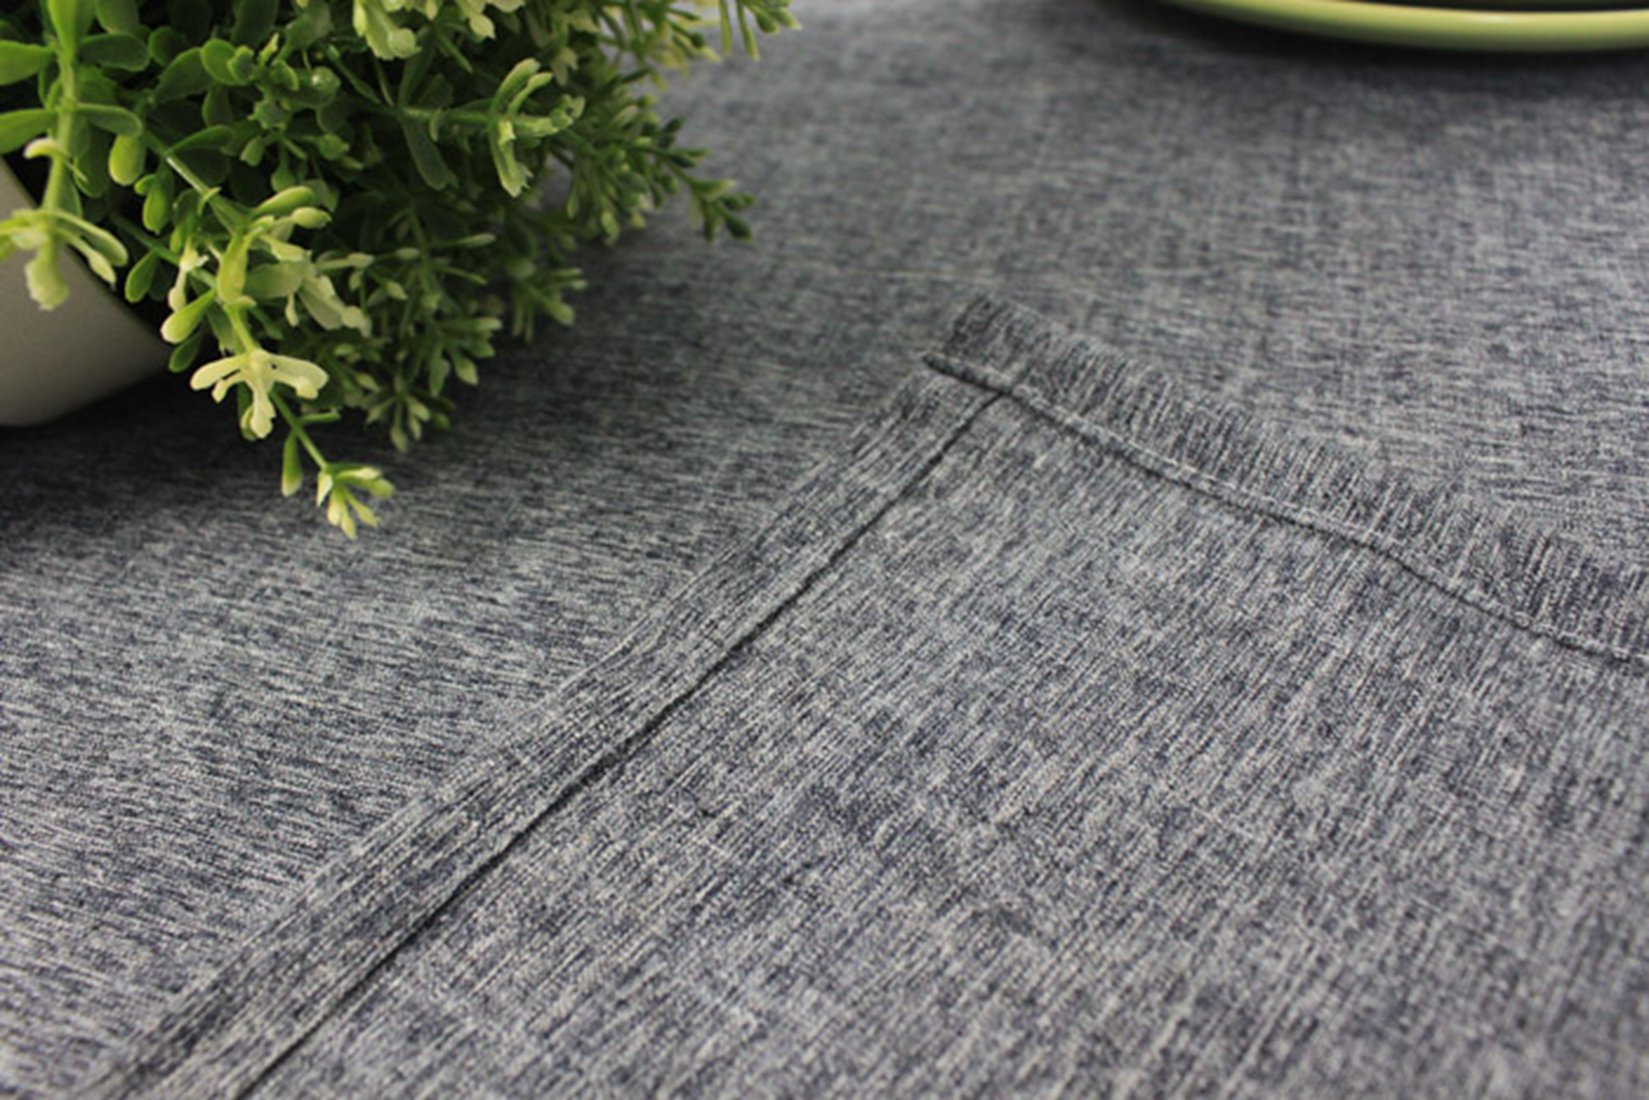 Cotton and Linen, Machine Washable, Everyday Chambray Kitchen Tablecloth For Dinner Parties, Summer & Outdoor Picnics(Gray,55x70.7In) by LINENLUX (Image #4)